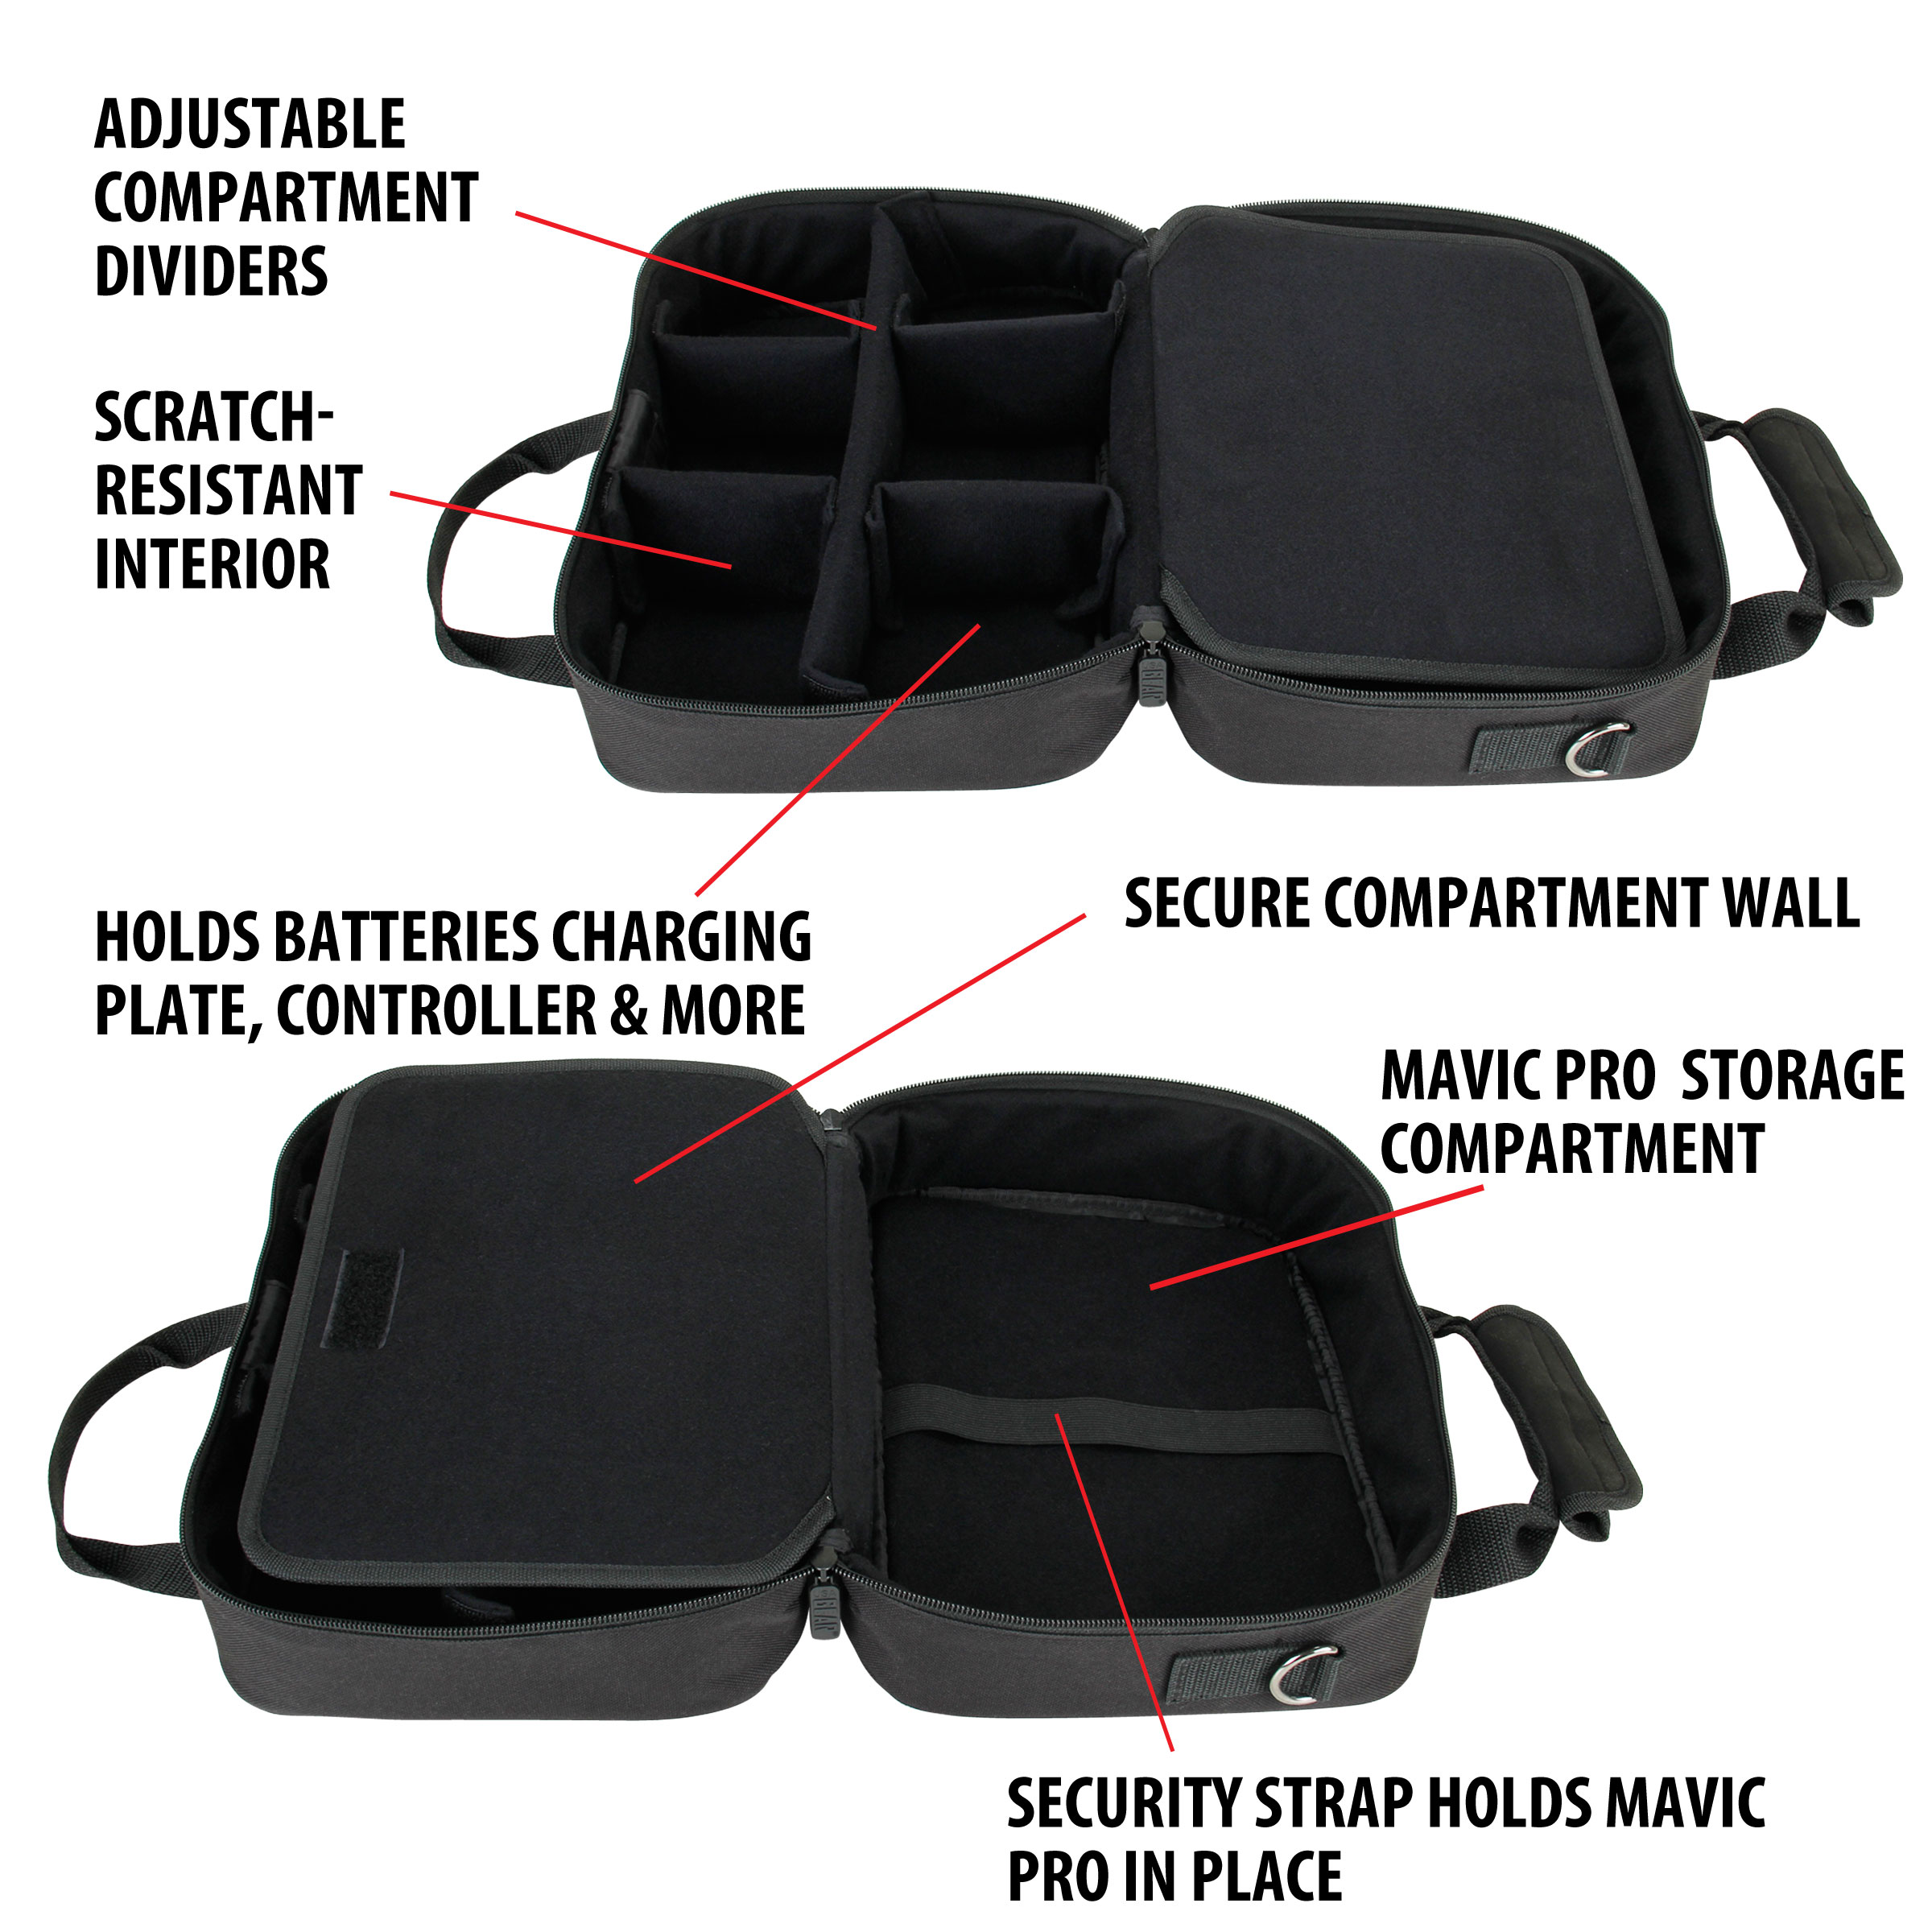 USA Gear Pet Grooming Bag - Dog   Cat Groomer Supply Case with ... 541dc4bb7b591